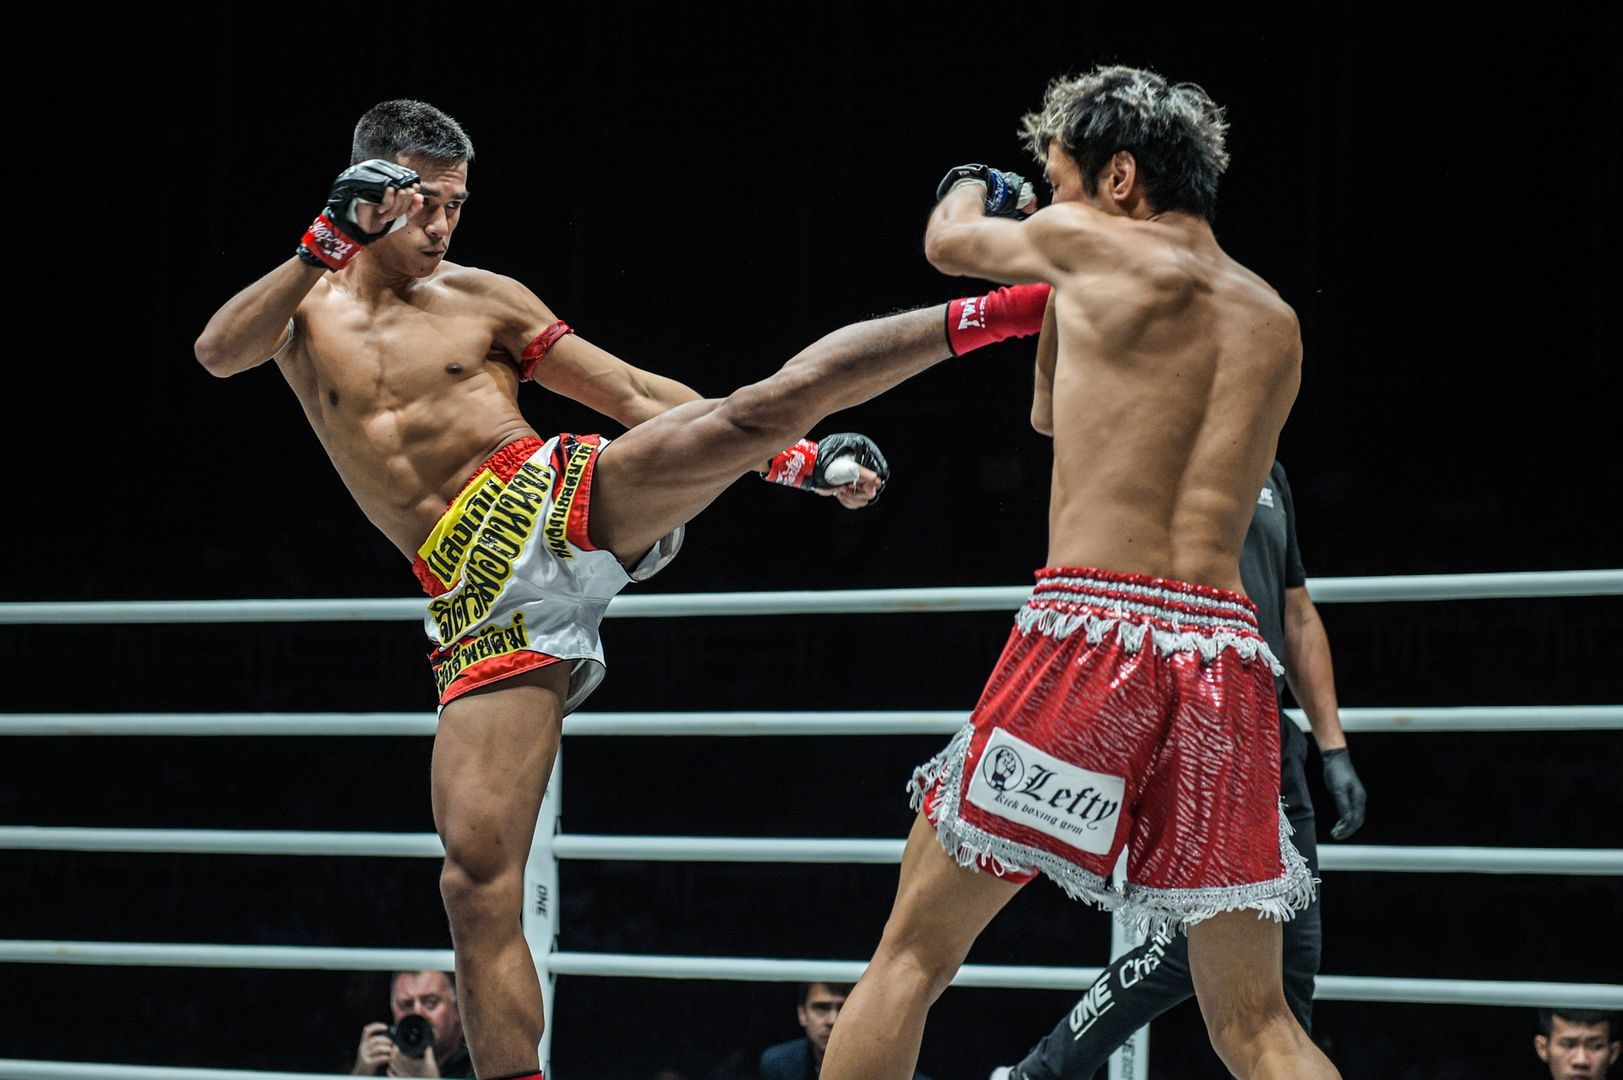 Muay Thai World Champion Panpayak Jitmuangnon blasts his rival with a roundhouse kick